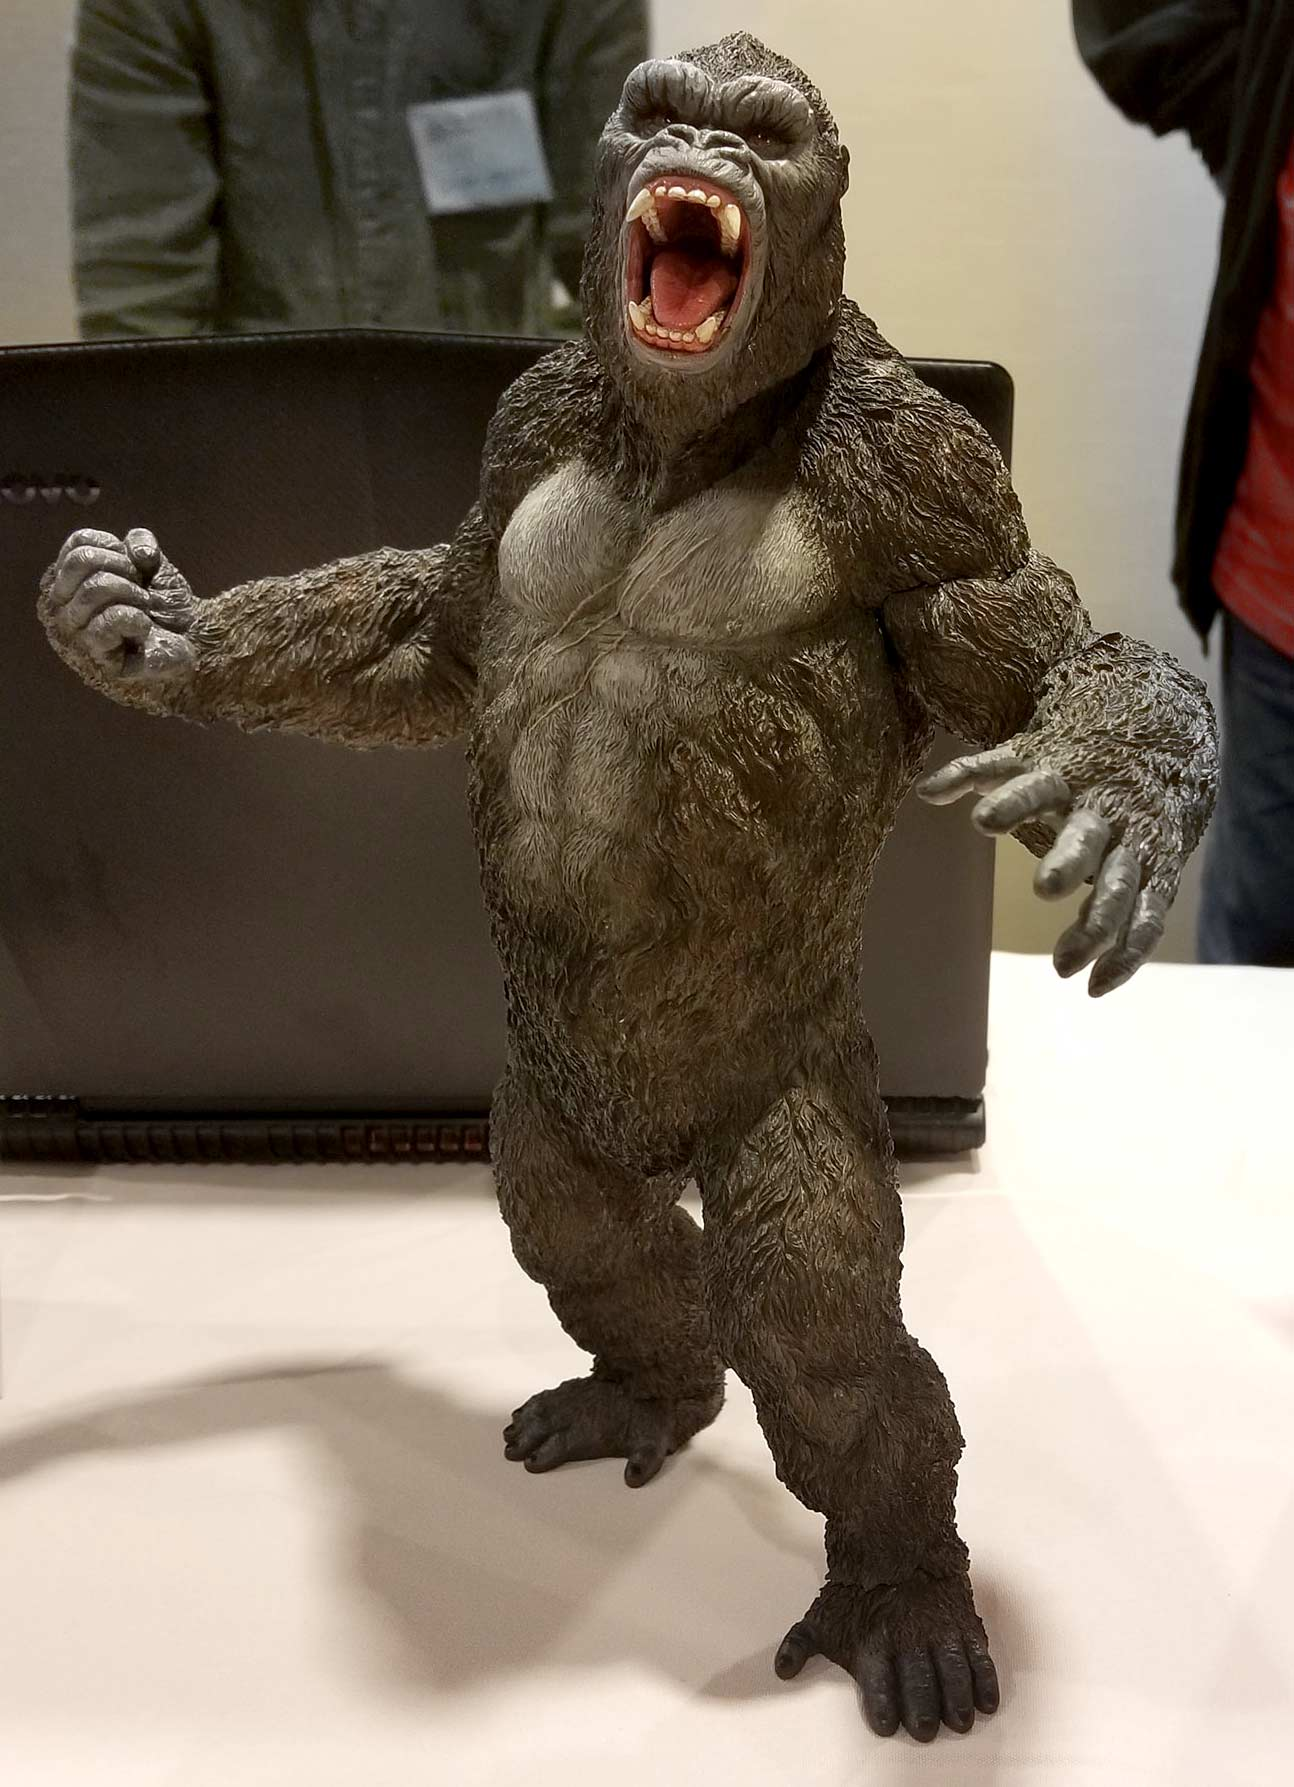 The recently announced Star Ace Kong: Skull Island Fighting Version vinyl figure on display at G-Fest.